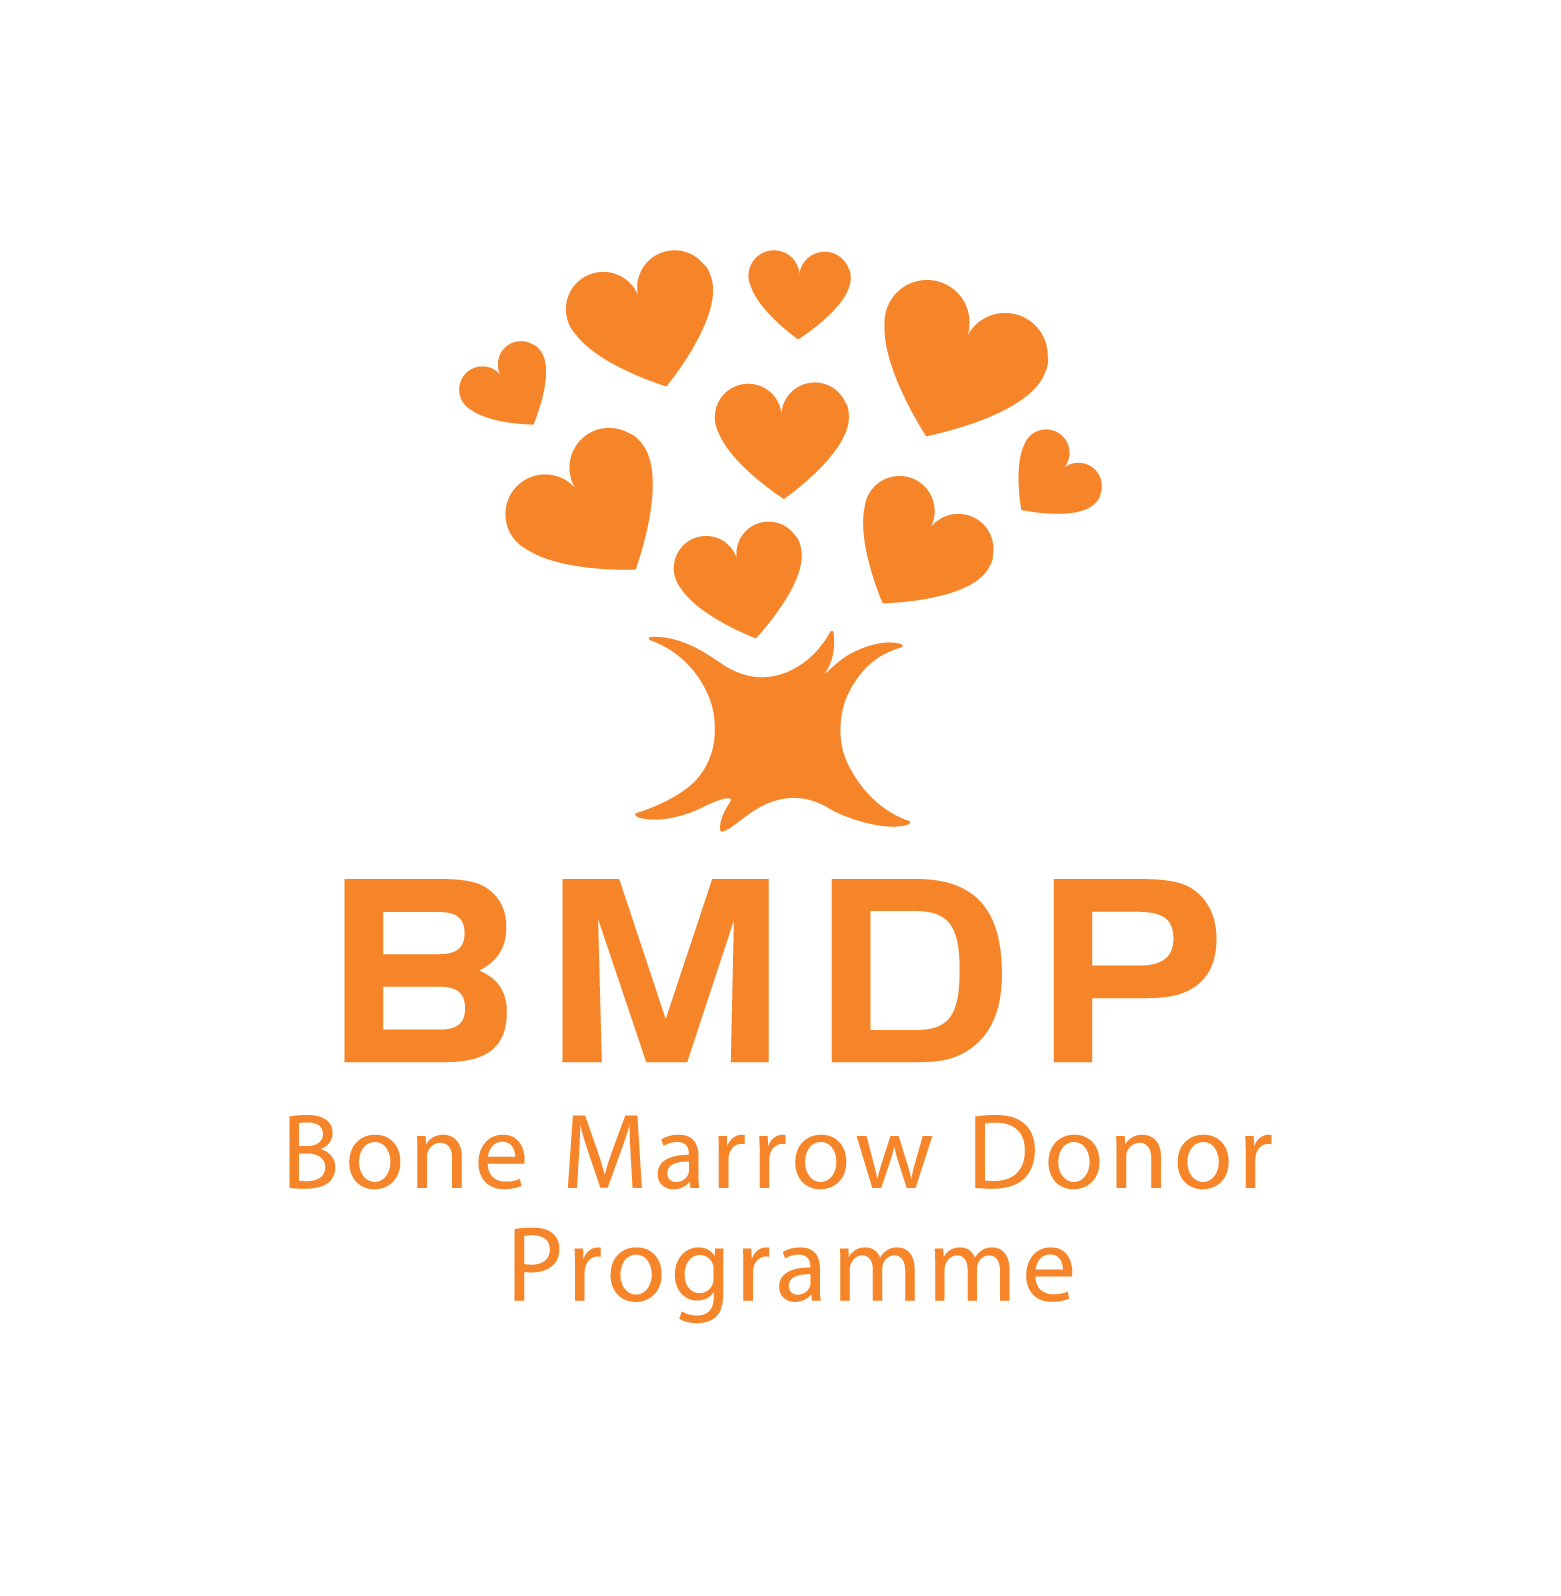 The Bone Marrow Donor Programme